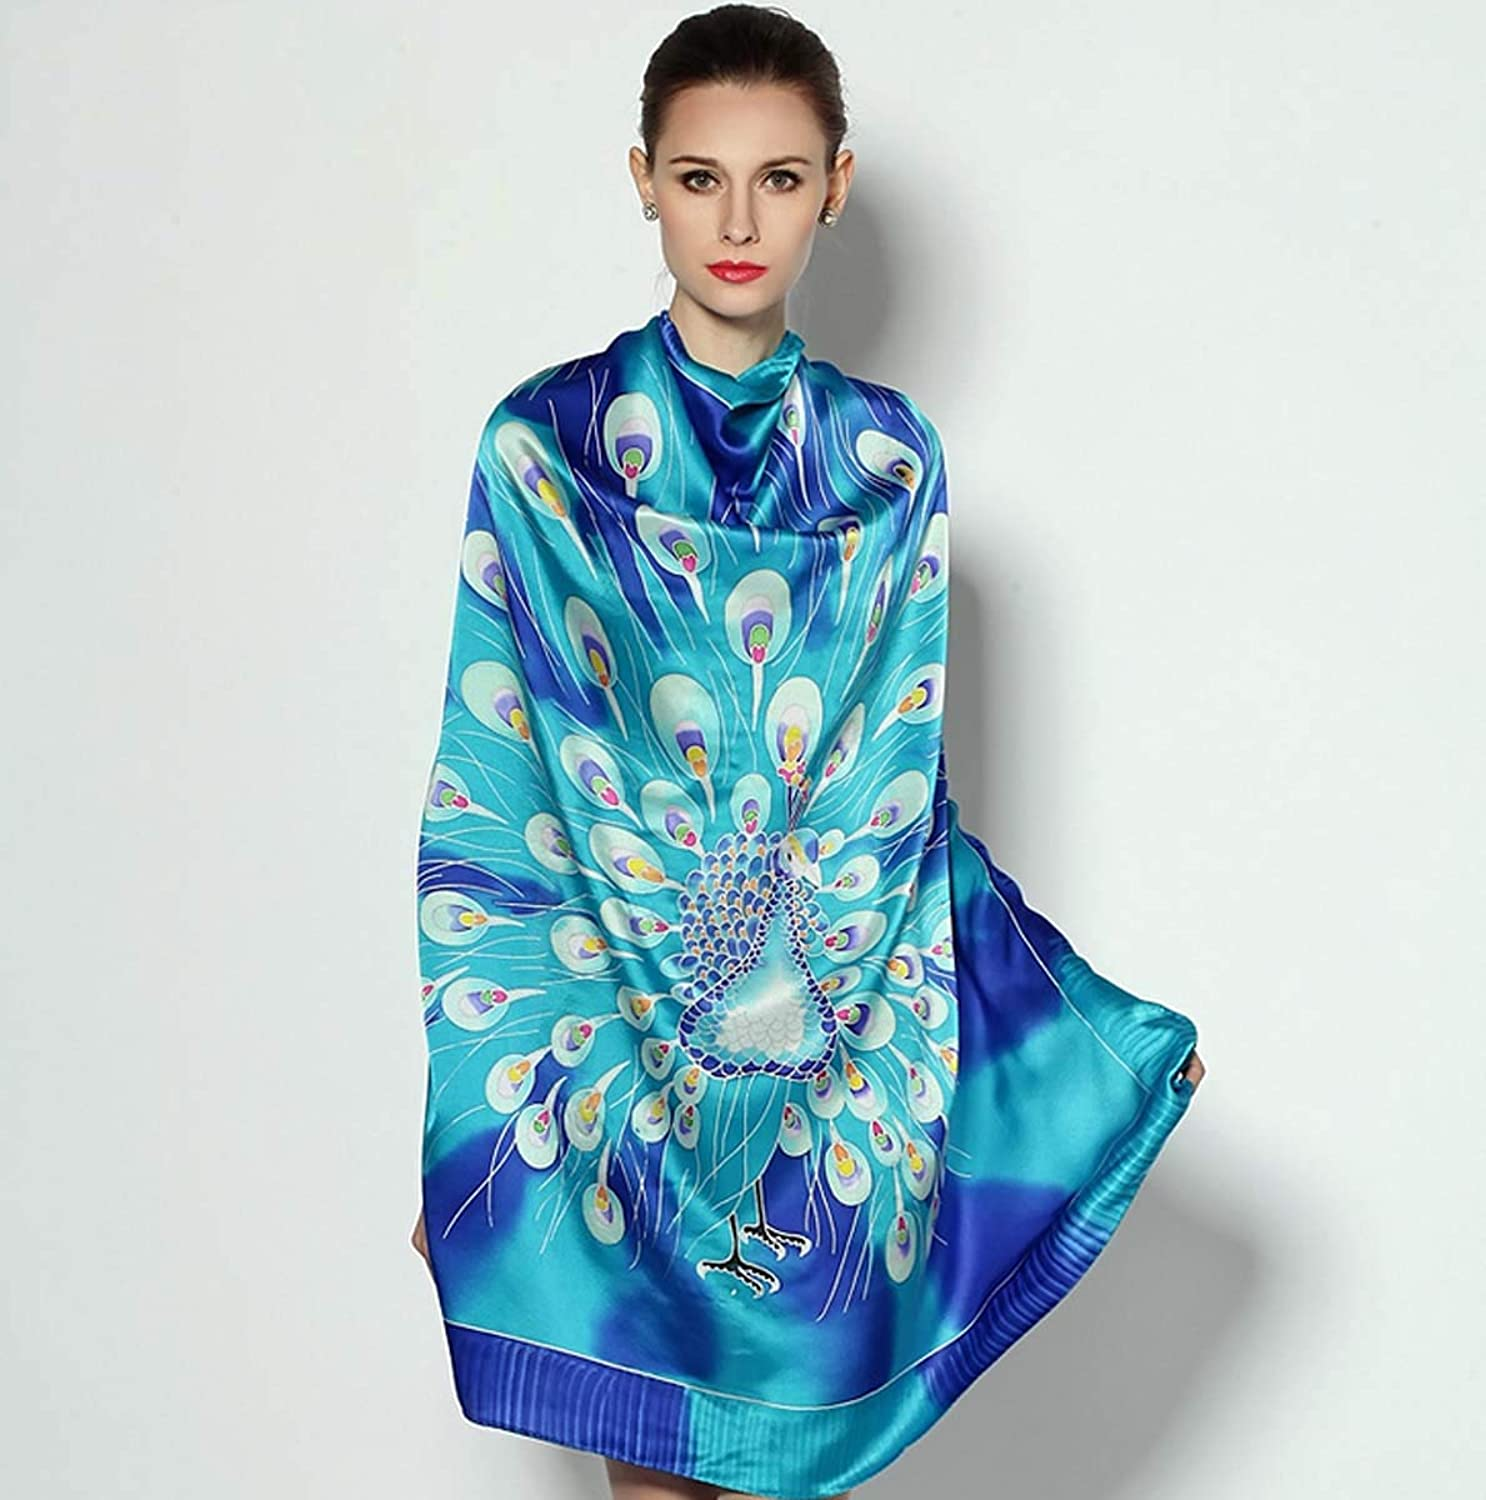 100% Silk Scarfs for Women, HandPainted Lightweight Satin Shawl and Fashion Thin Scarves for Ladies